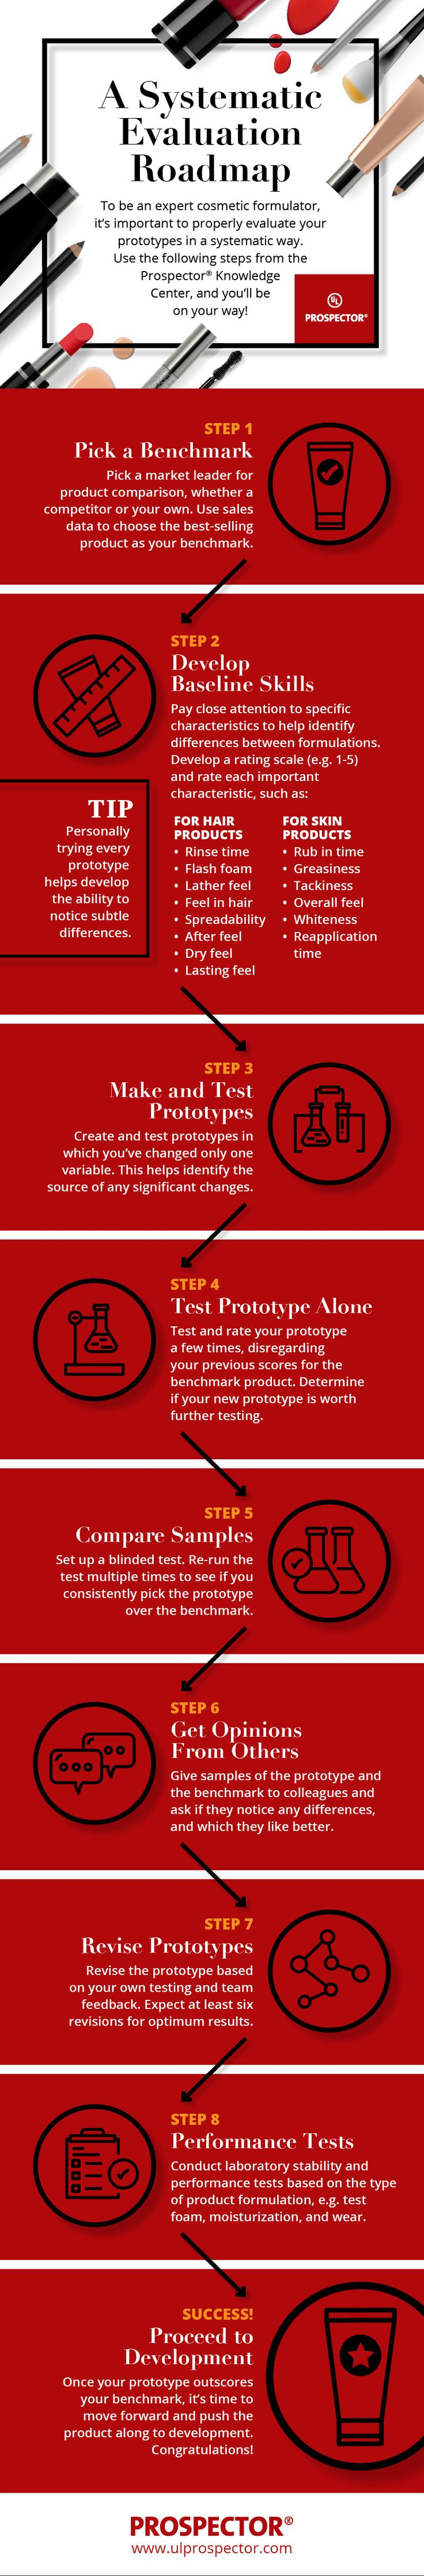 [INFOGRAPHIC] To be an expert cosmetic formulator, it's important to properly evaluate your prototypes for desired results. Find five steps walk you through the process on the Prospector Knowledge Center.